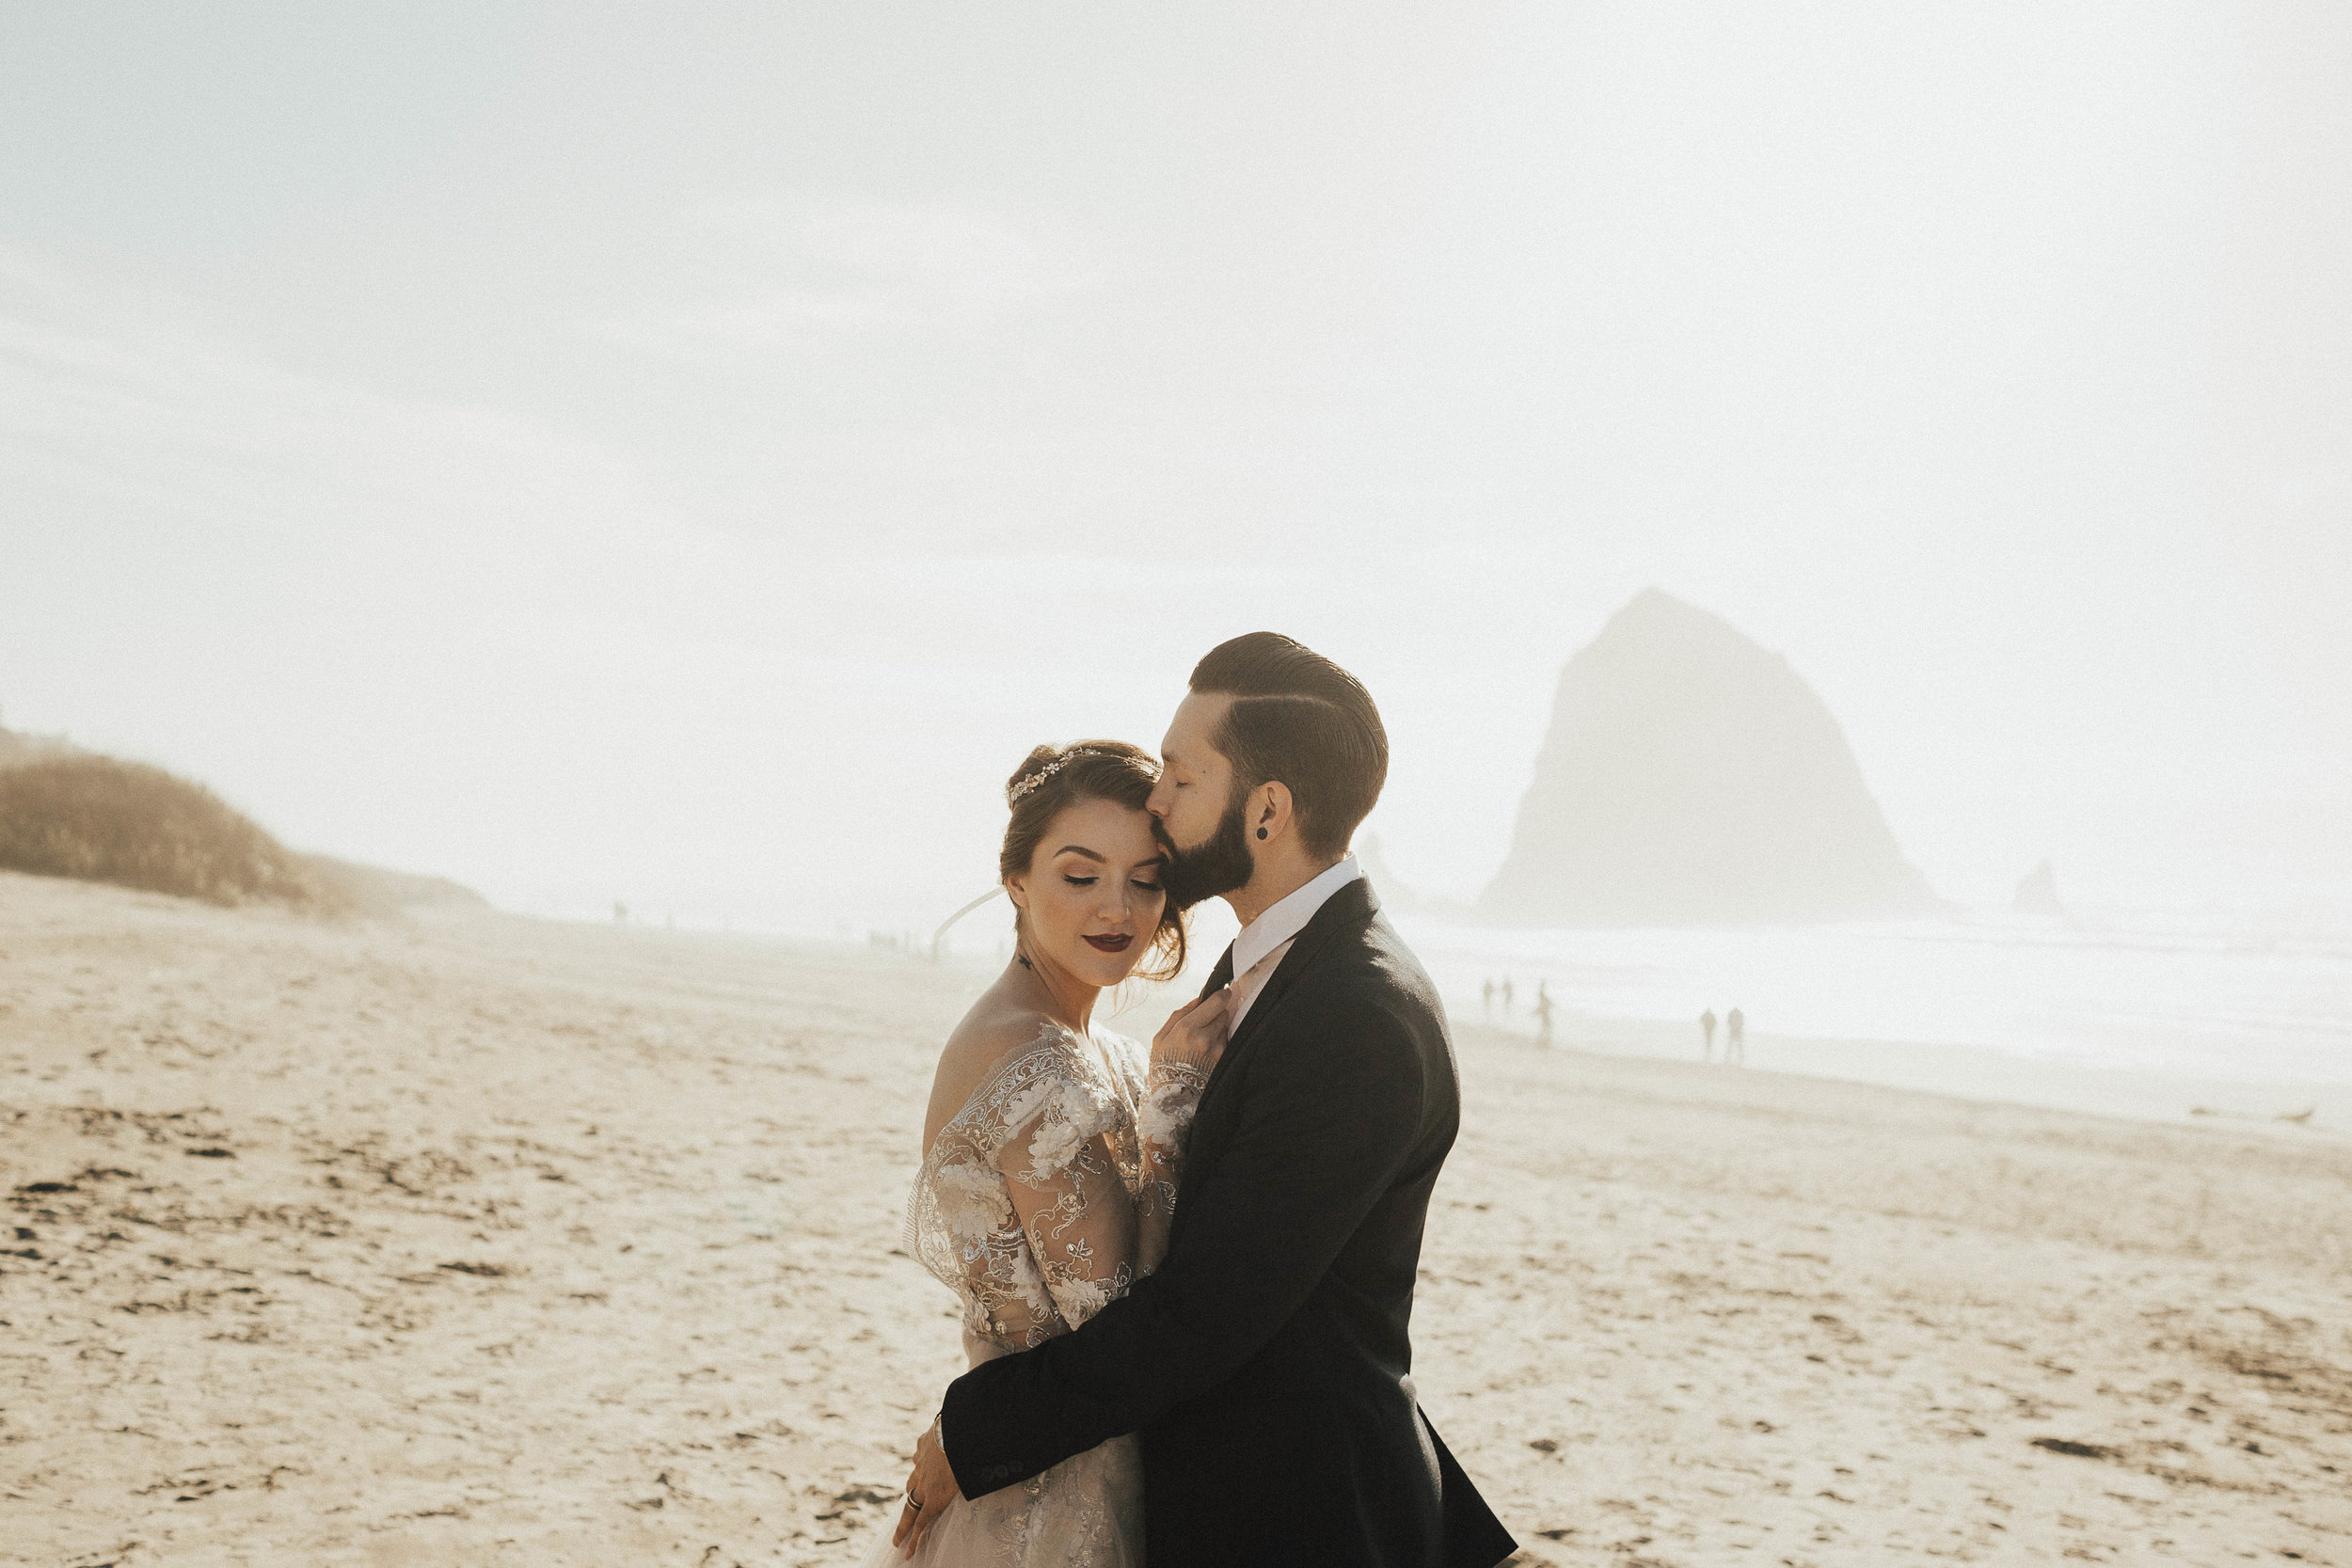 Cannon Beach Elopement - Michelle Larmand Photography - 043